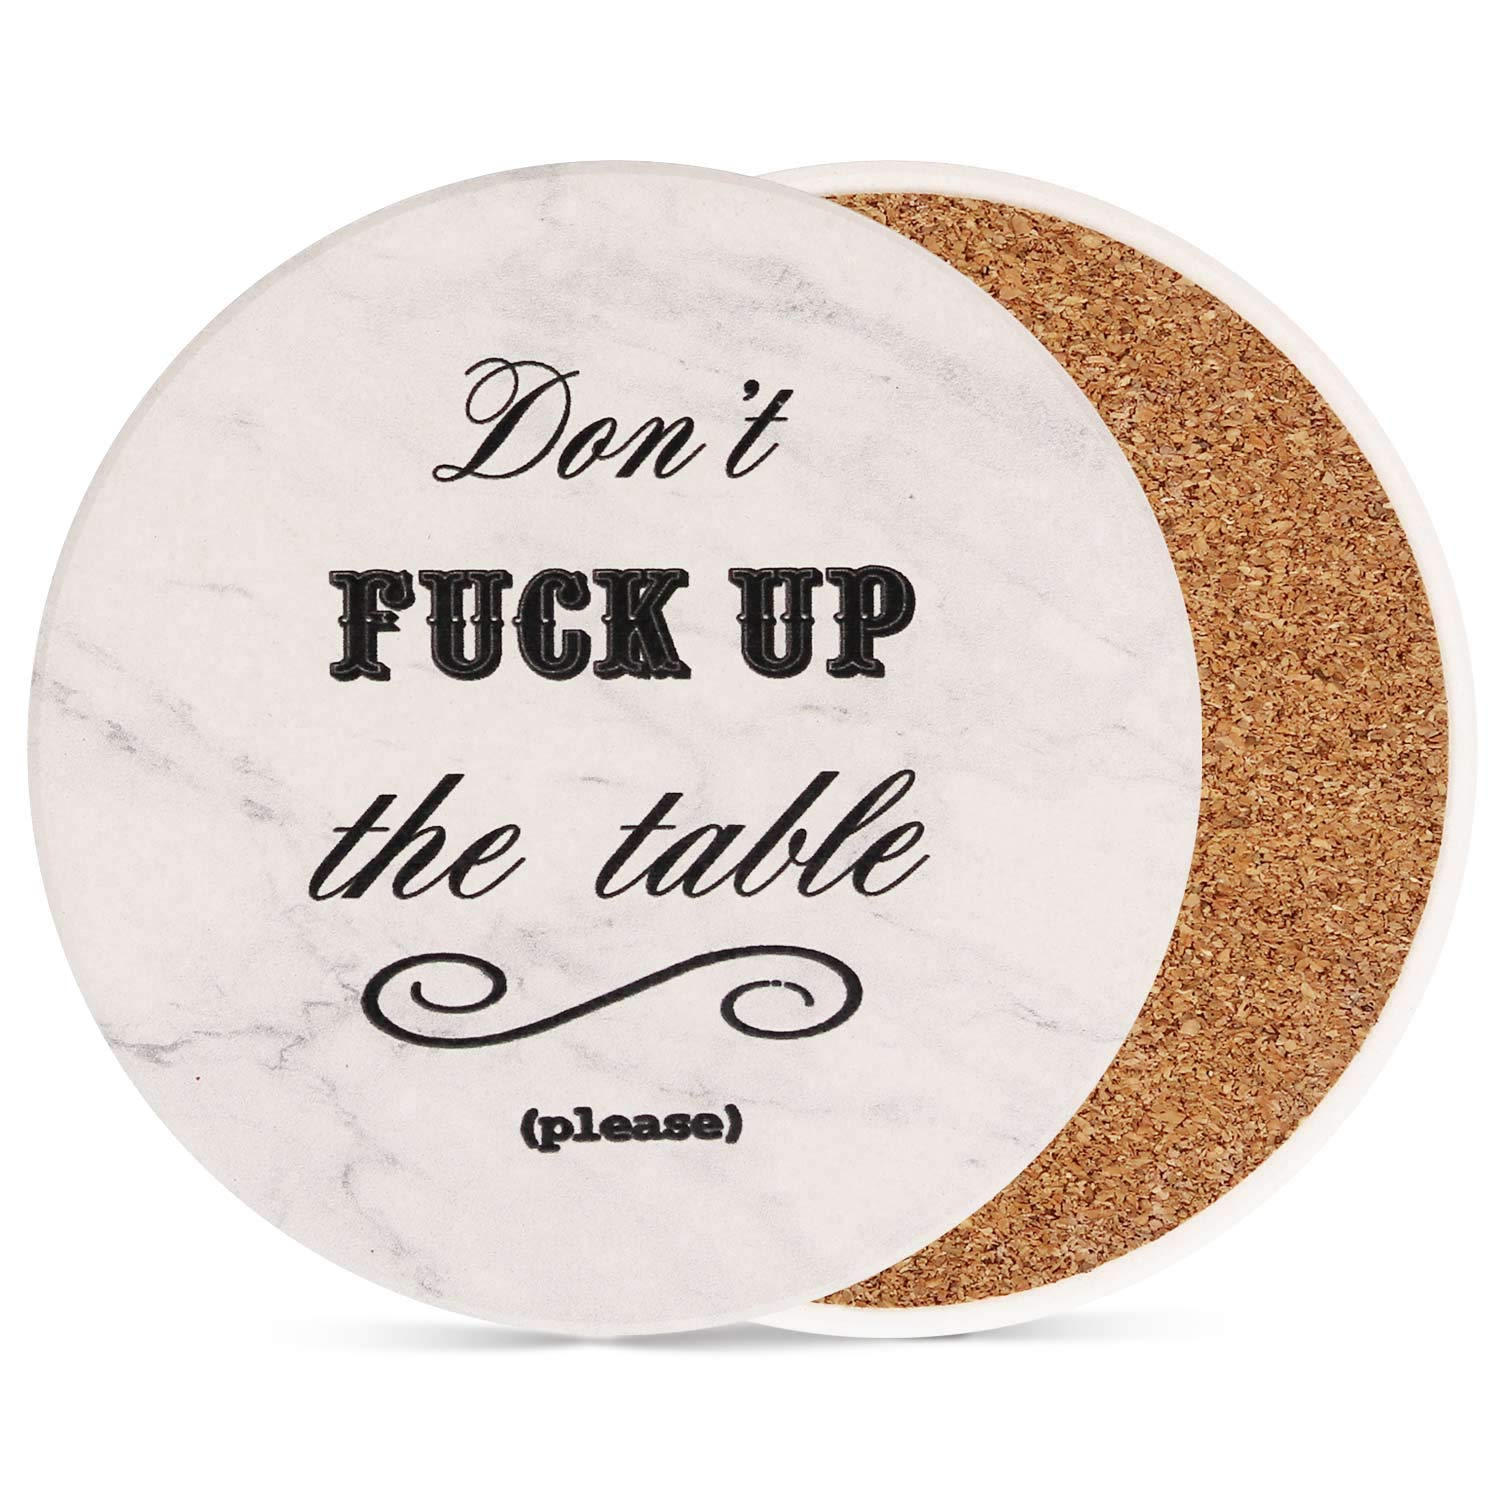 Coasters for Drinks 8-Piece Funny Absorbent Stone Ceramic Coasters Set - White Marble Style Coaster for Drink with Cork Backing, Protect Your Furniture From Spills, Scratches, Water Rings and Damage